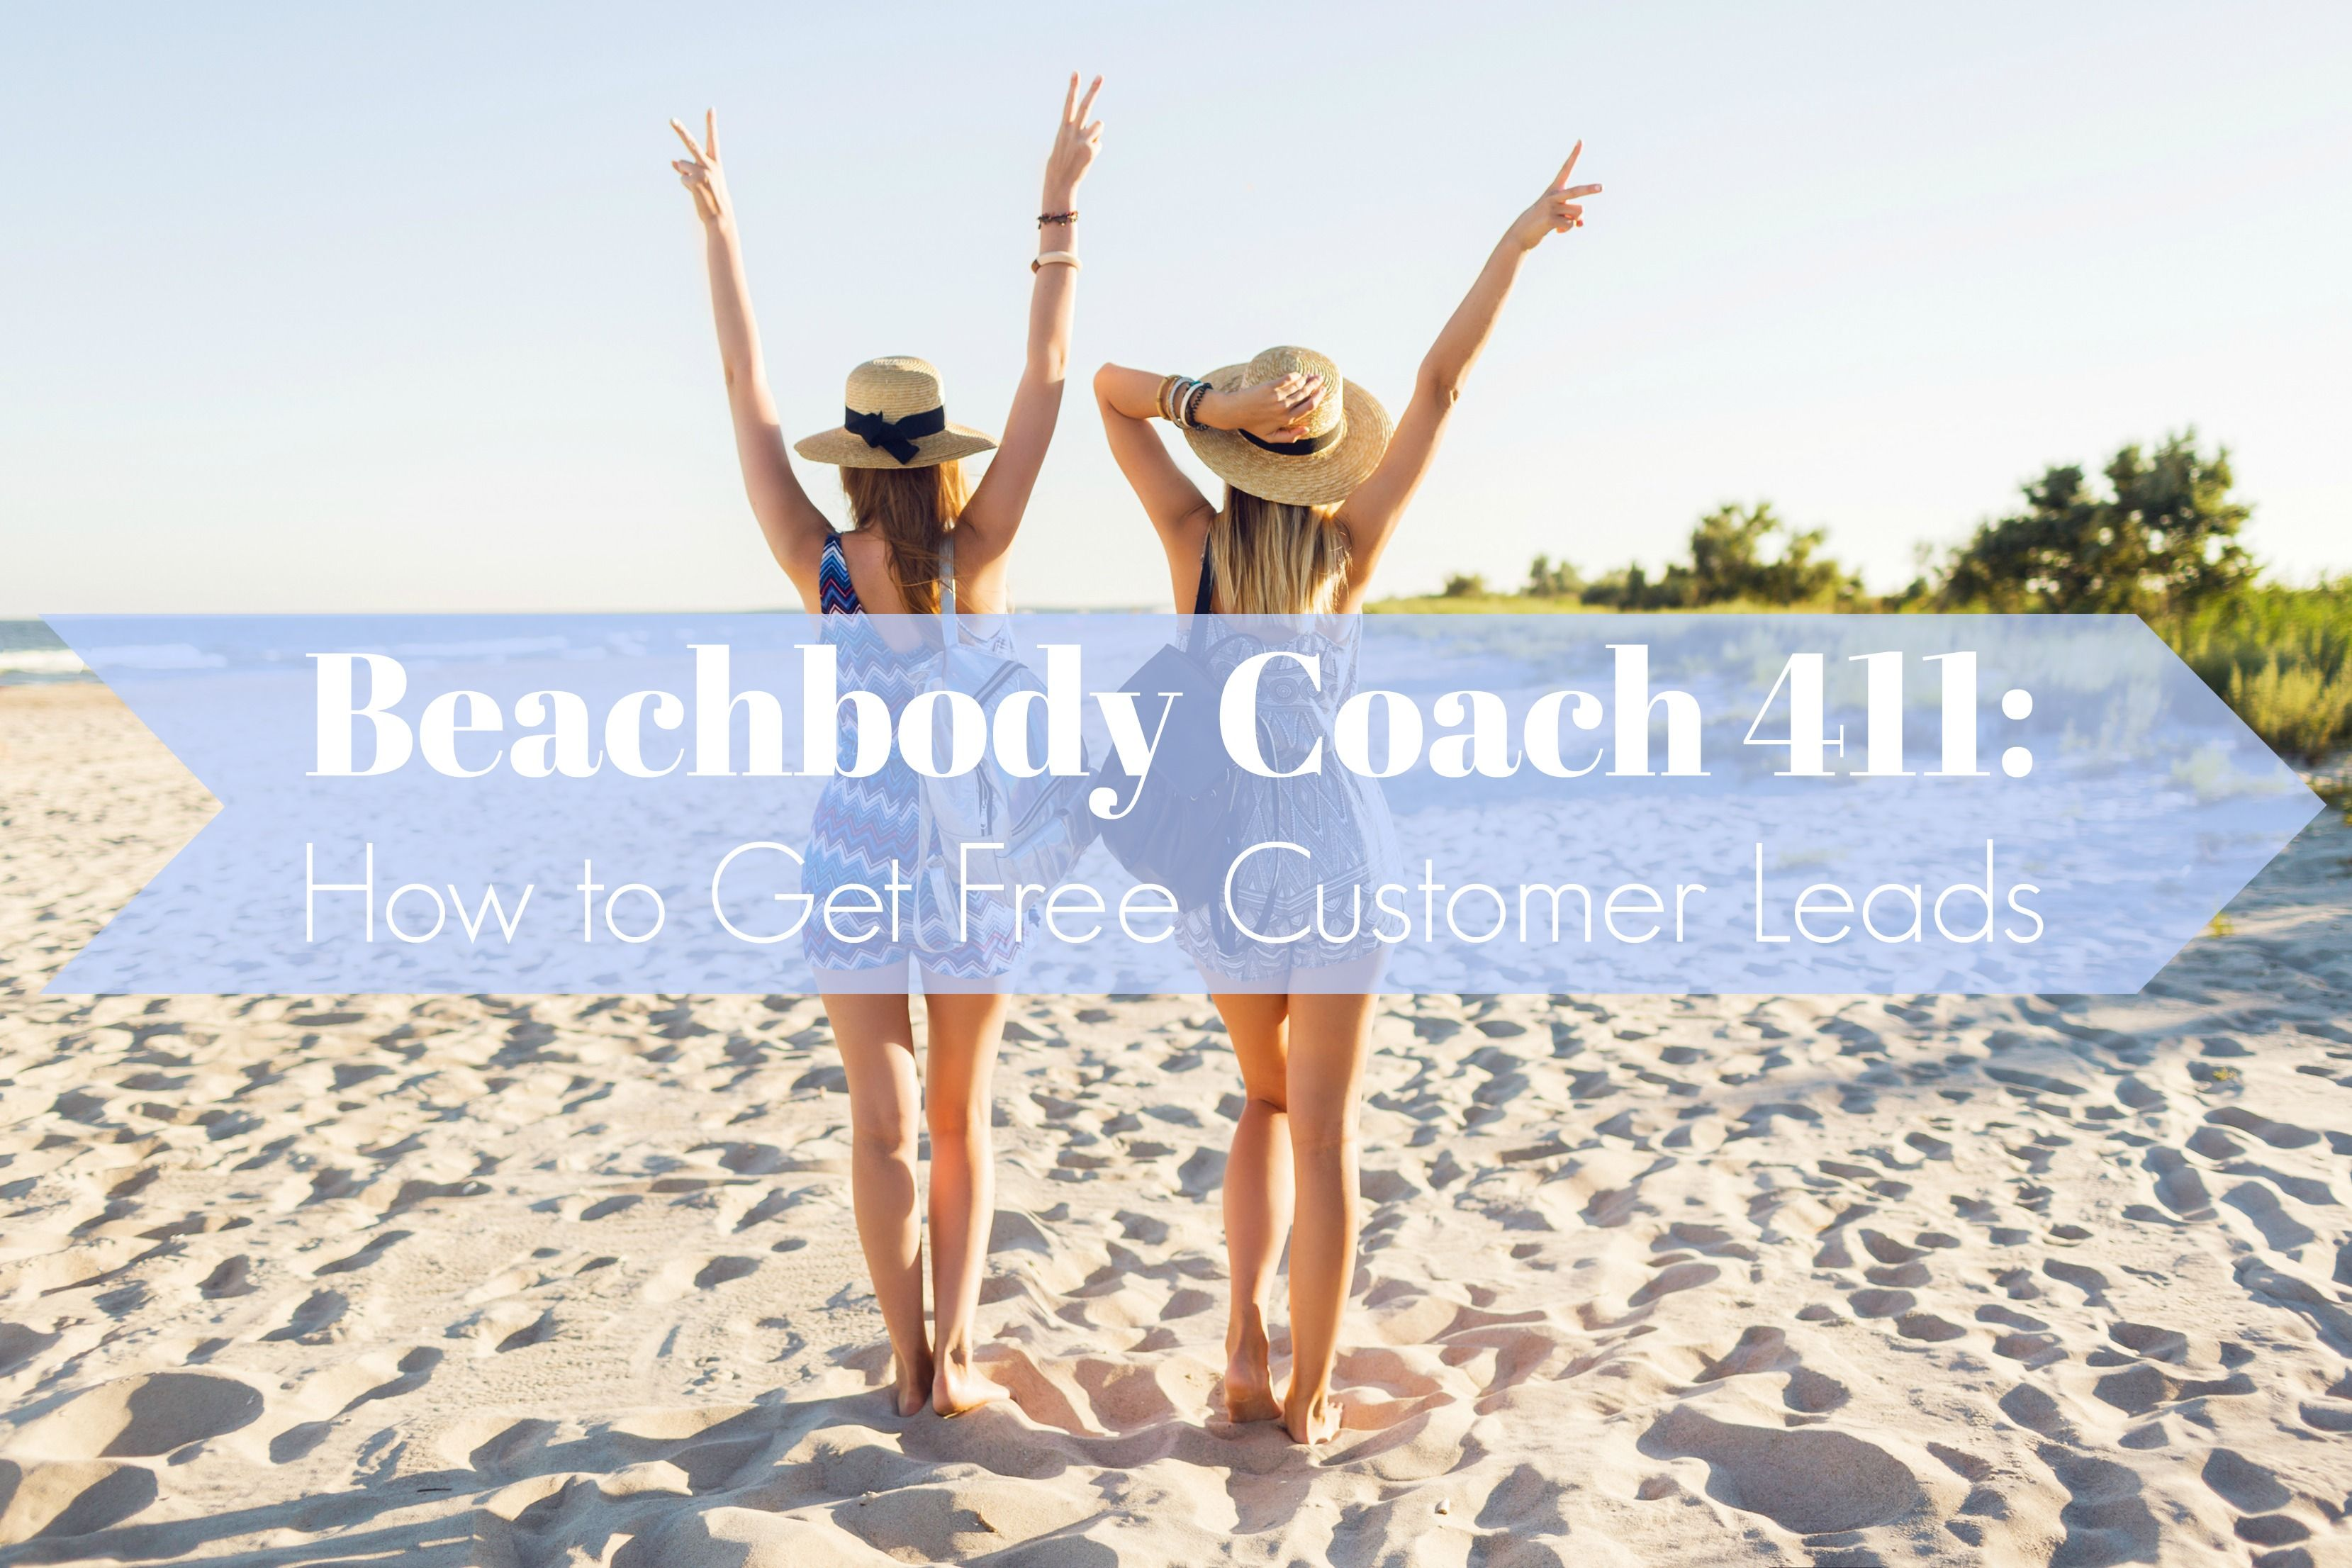 How Does A Beachbody Coach Qualify for Free Customer Leads ...